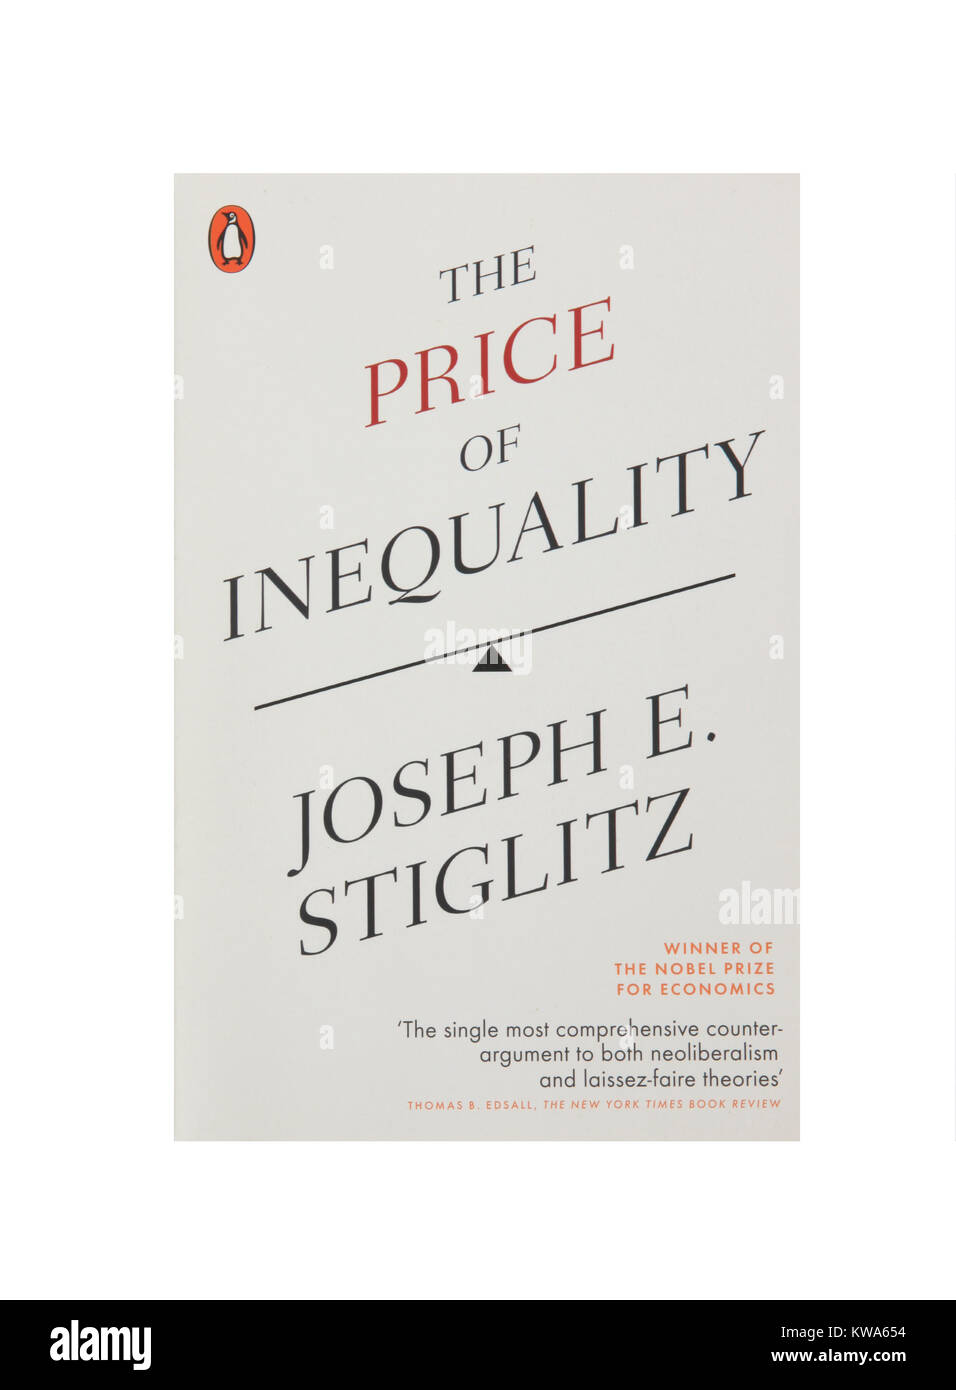 The book, The price of inequality by Joseph E Stiglitz - Stock Image